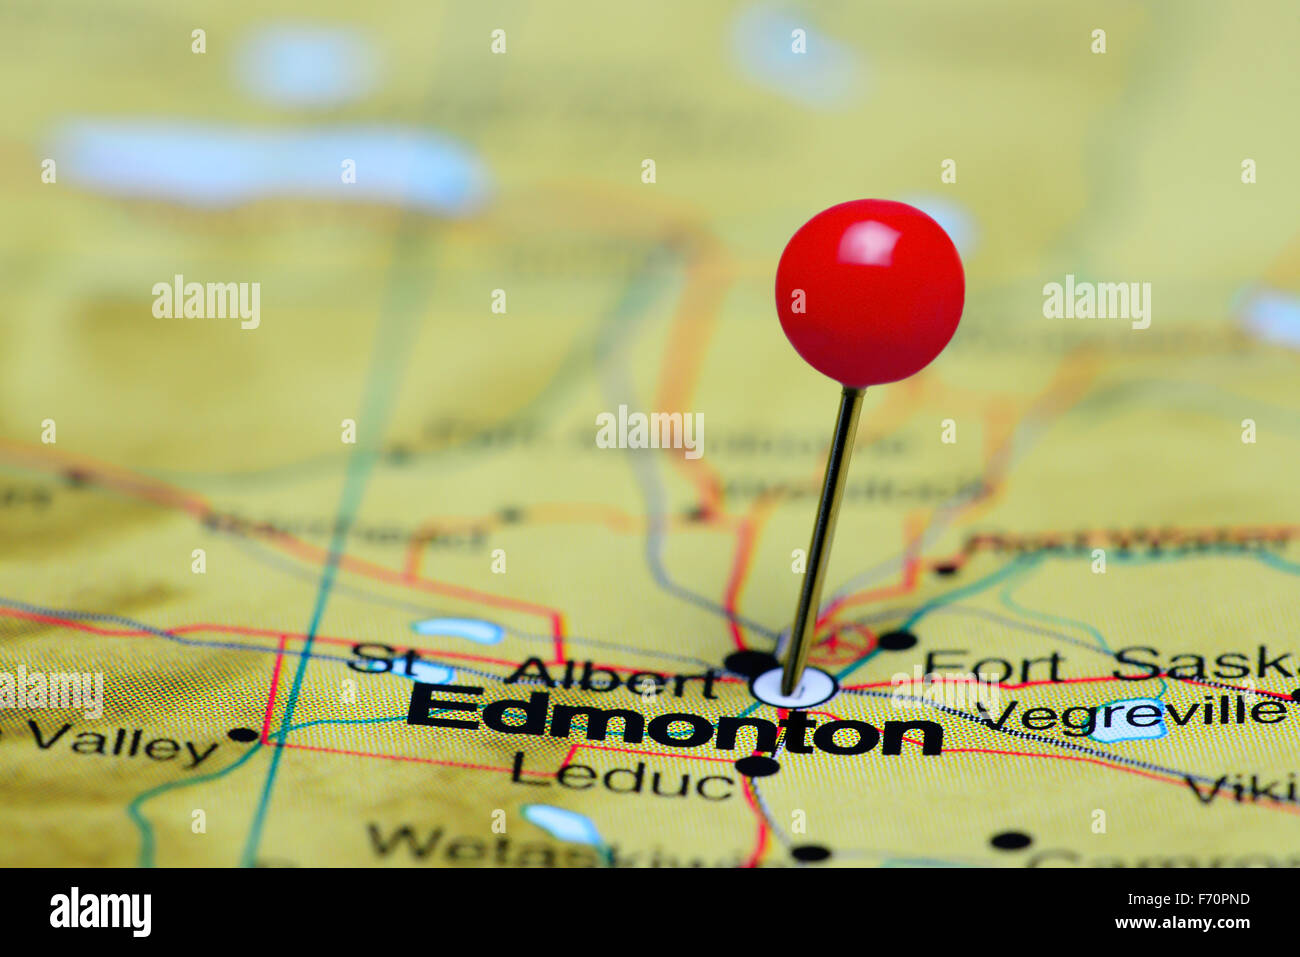 Edmonton On Map Of Canada.Edmonton Pinned On A Map Of Canada Stock Photo 90372281 Alamy